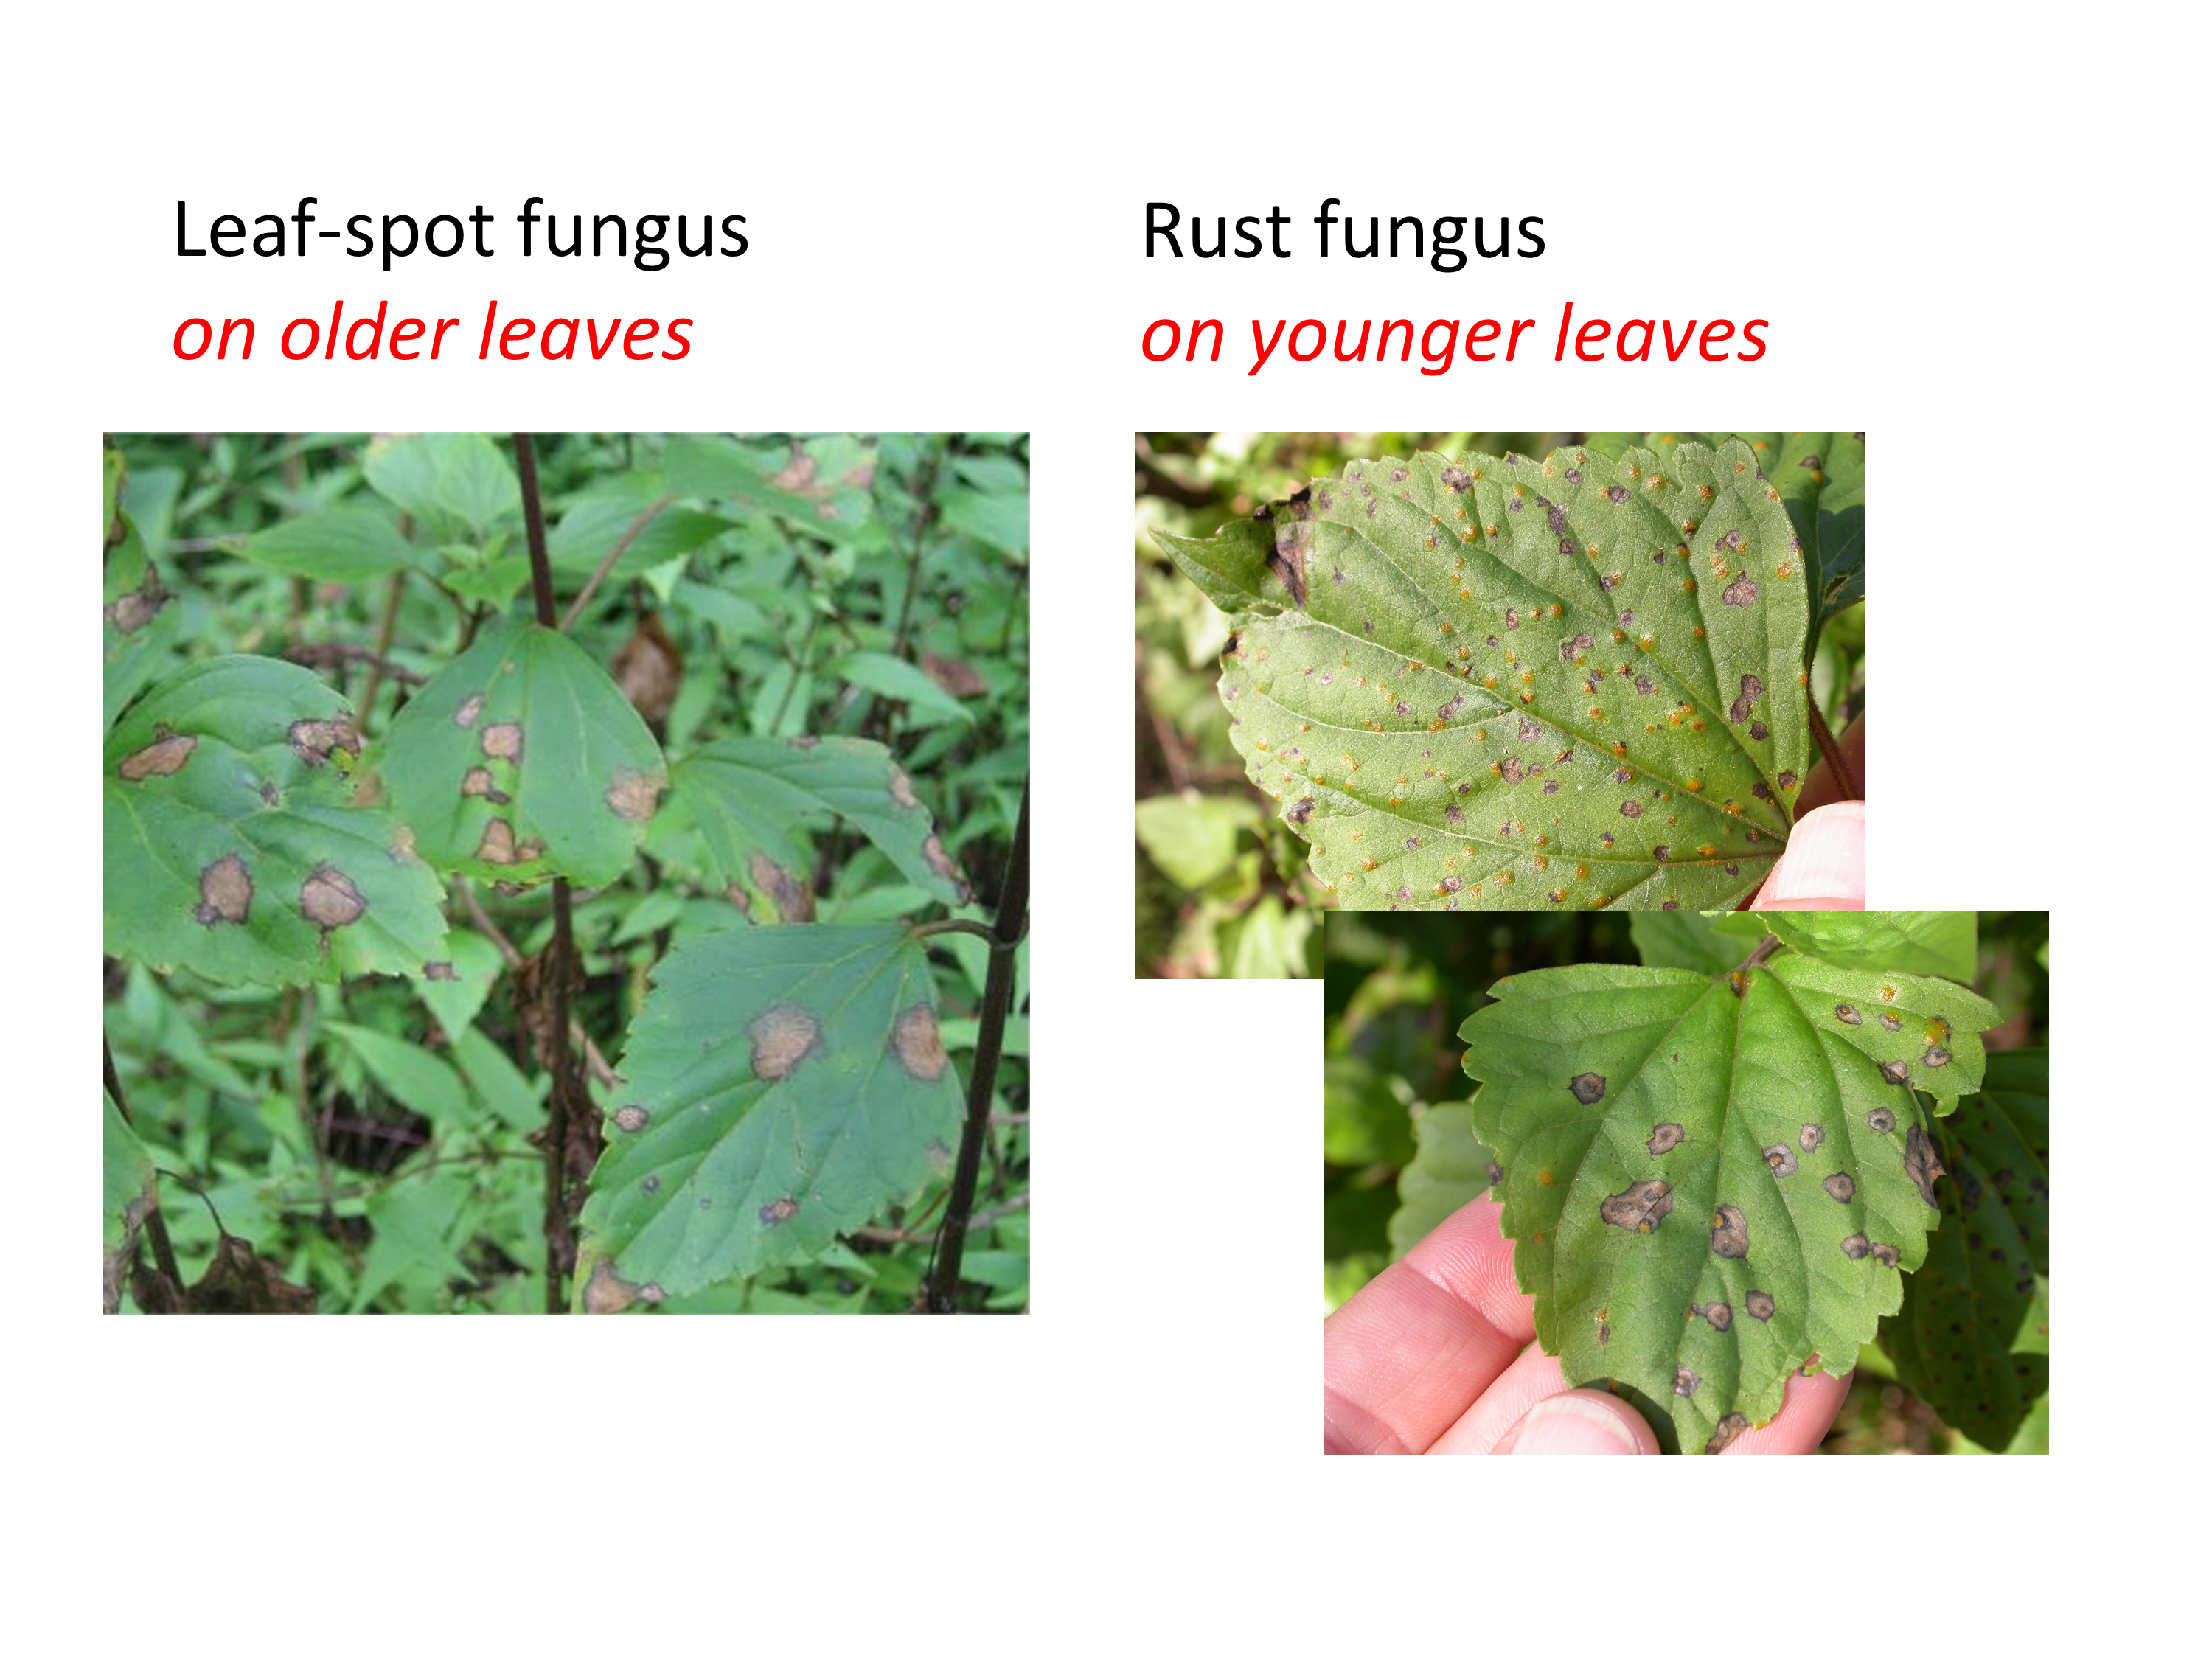 Leaf-spot vs rust fungus